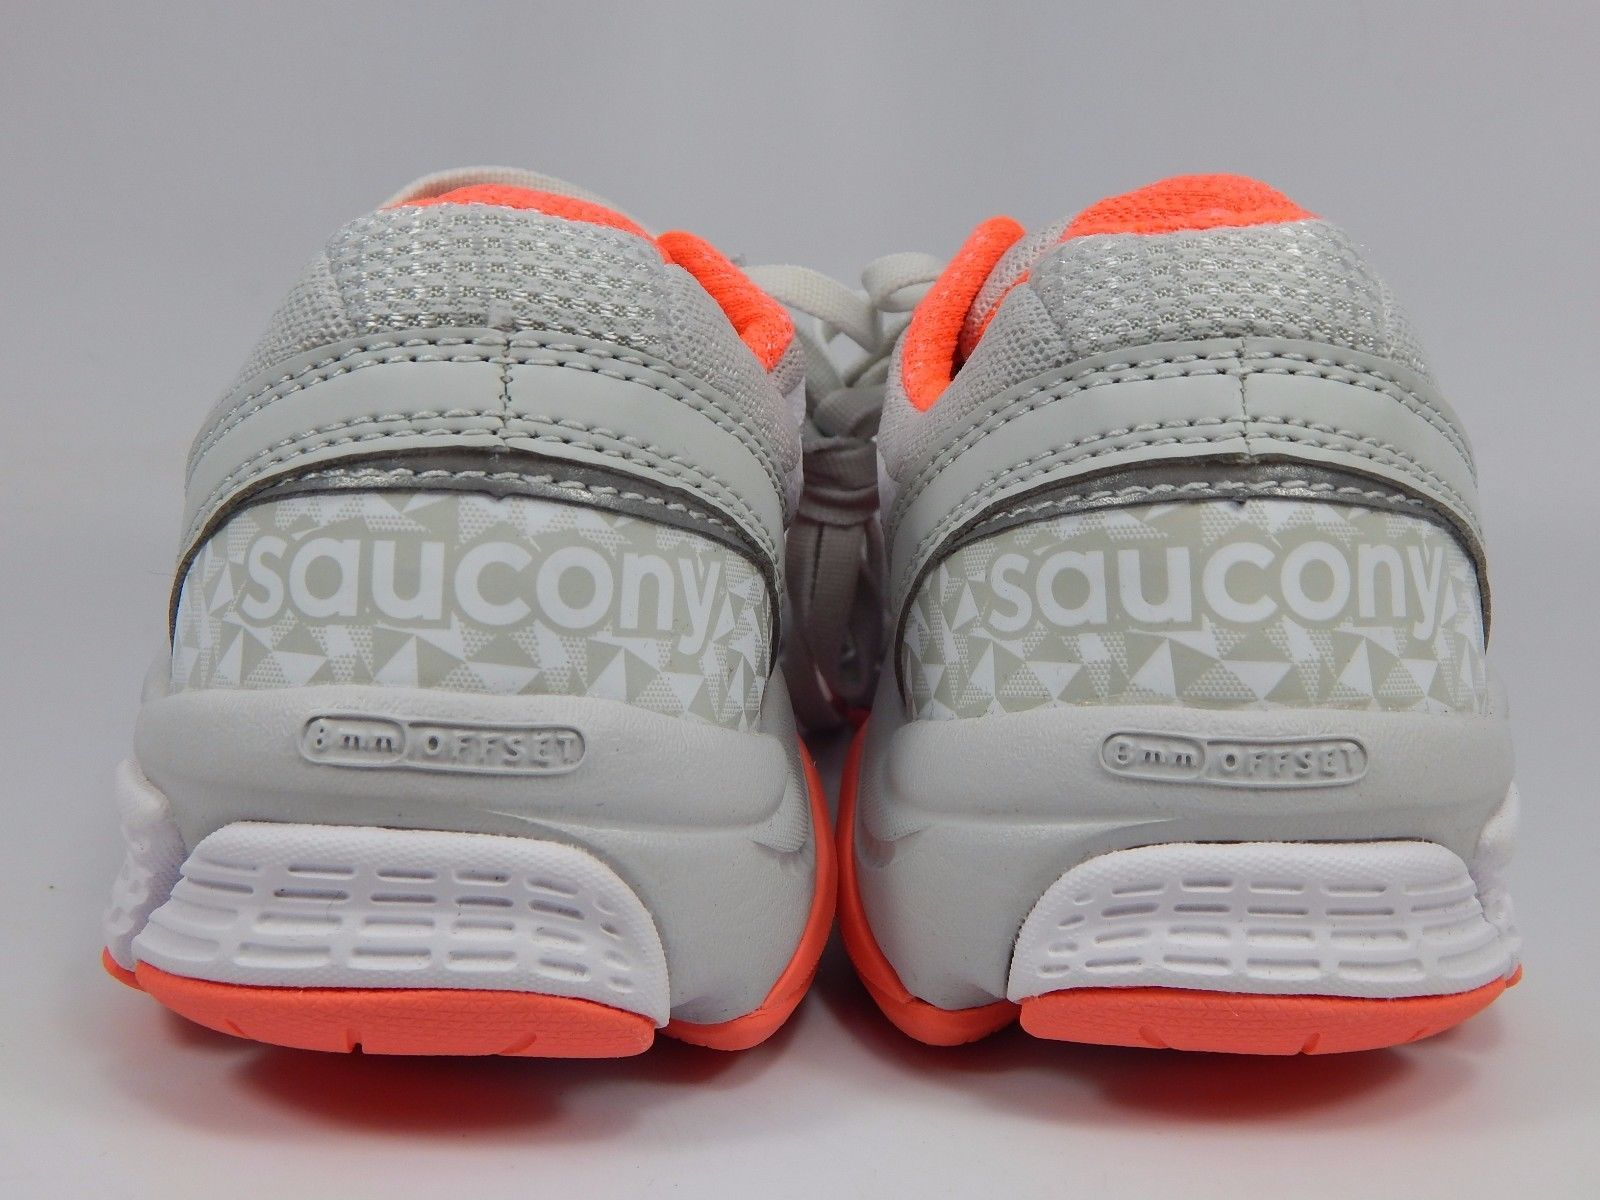 Saucony Linchpin Women's Running Shoes Size US 7 M (B) EU 38 Gray Coral S15334-2